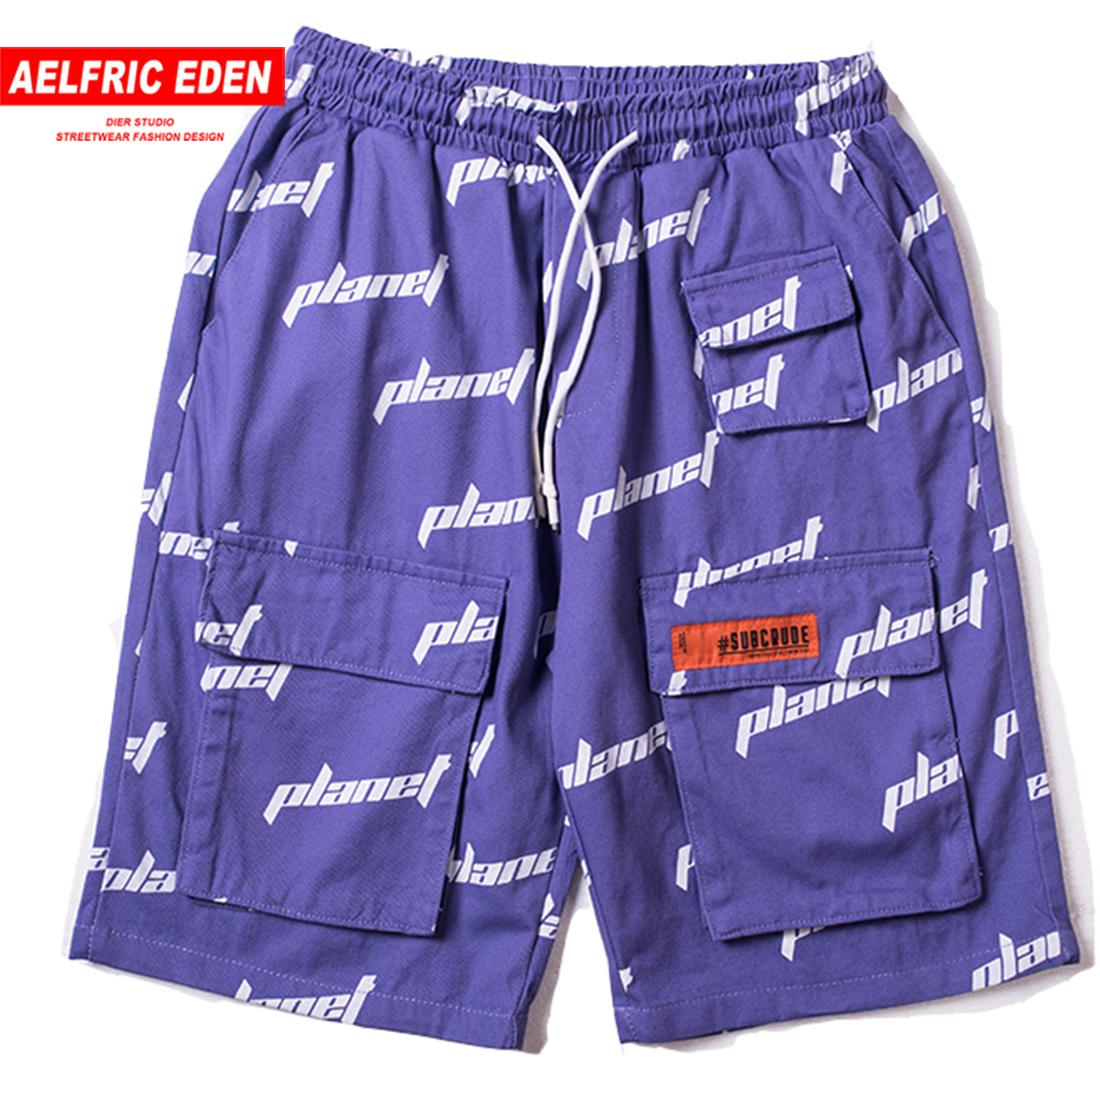 Aelfric Eden Letter Full Print Fashion Short Jogger 2019 Hip Hop Shorts Summer Casual Streetwear Drawstring Cargo Knee Length C19040402